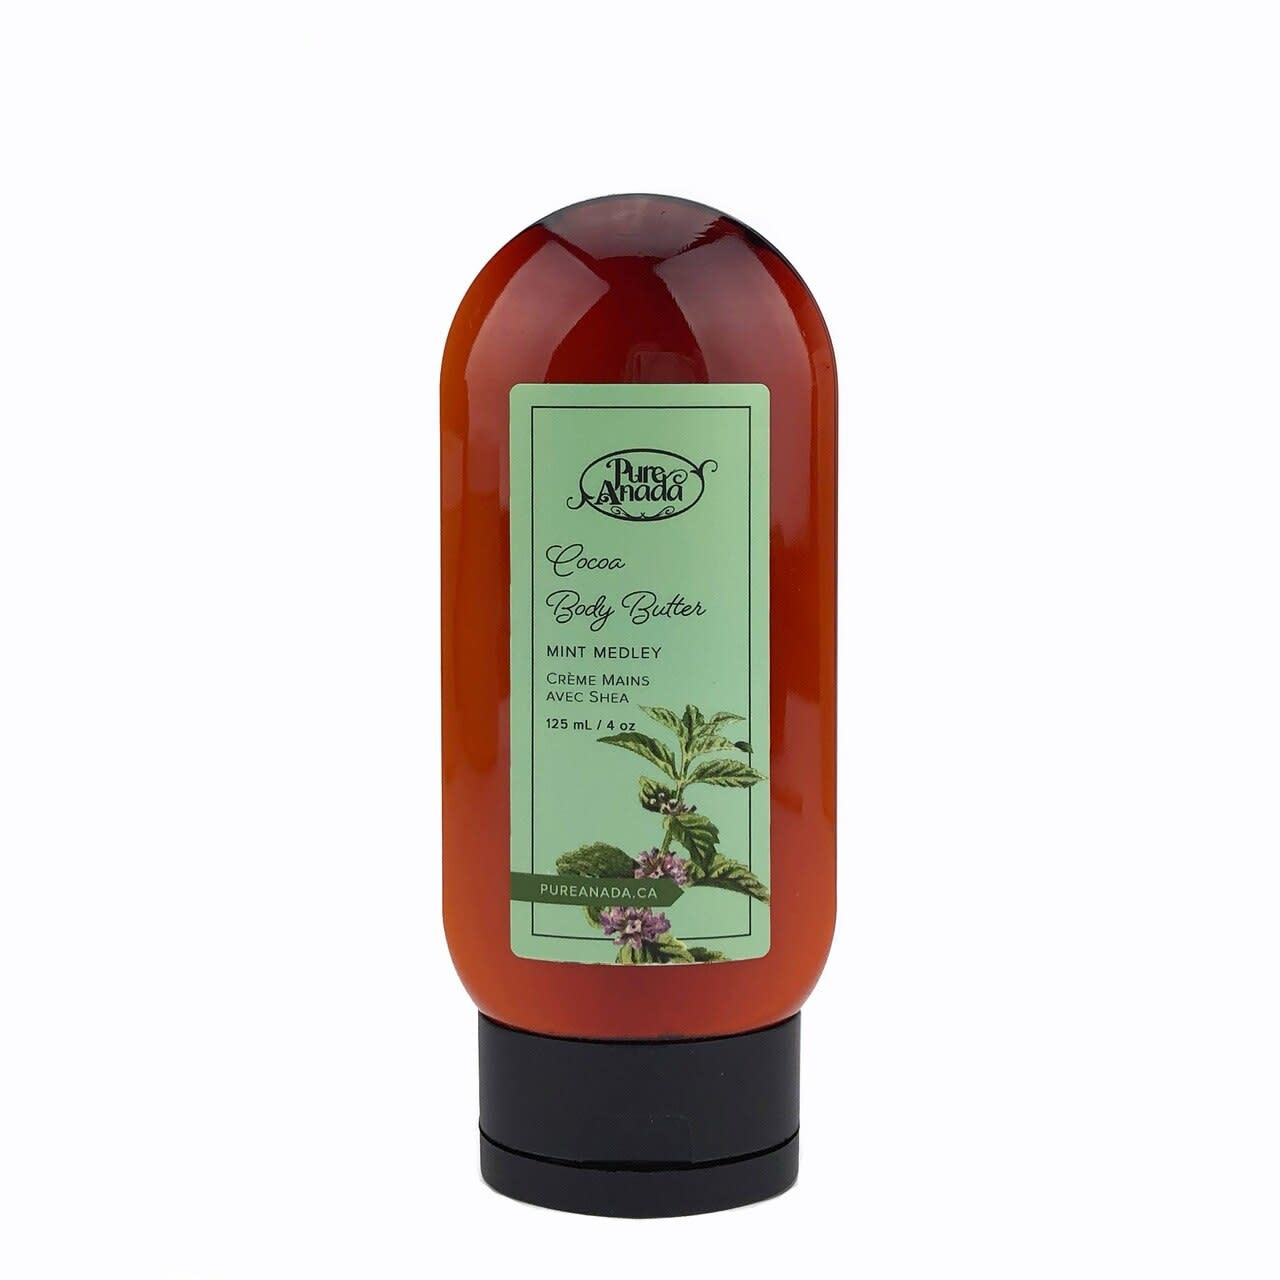 Cocoa Body Butter - Mint Medley-1